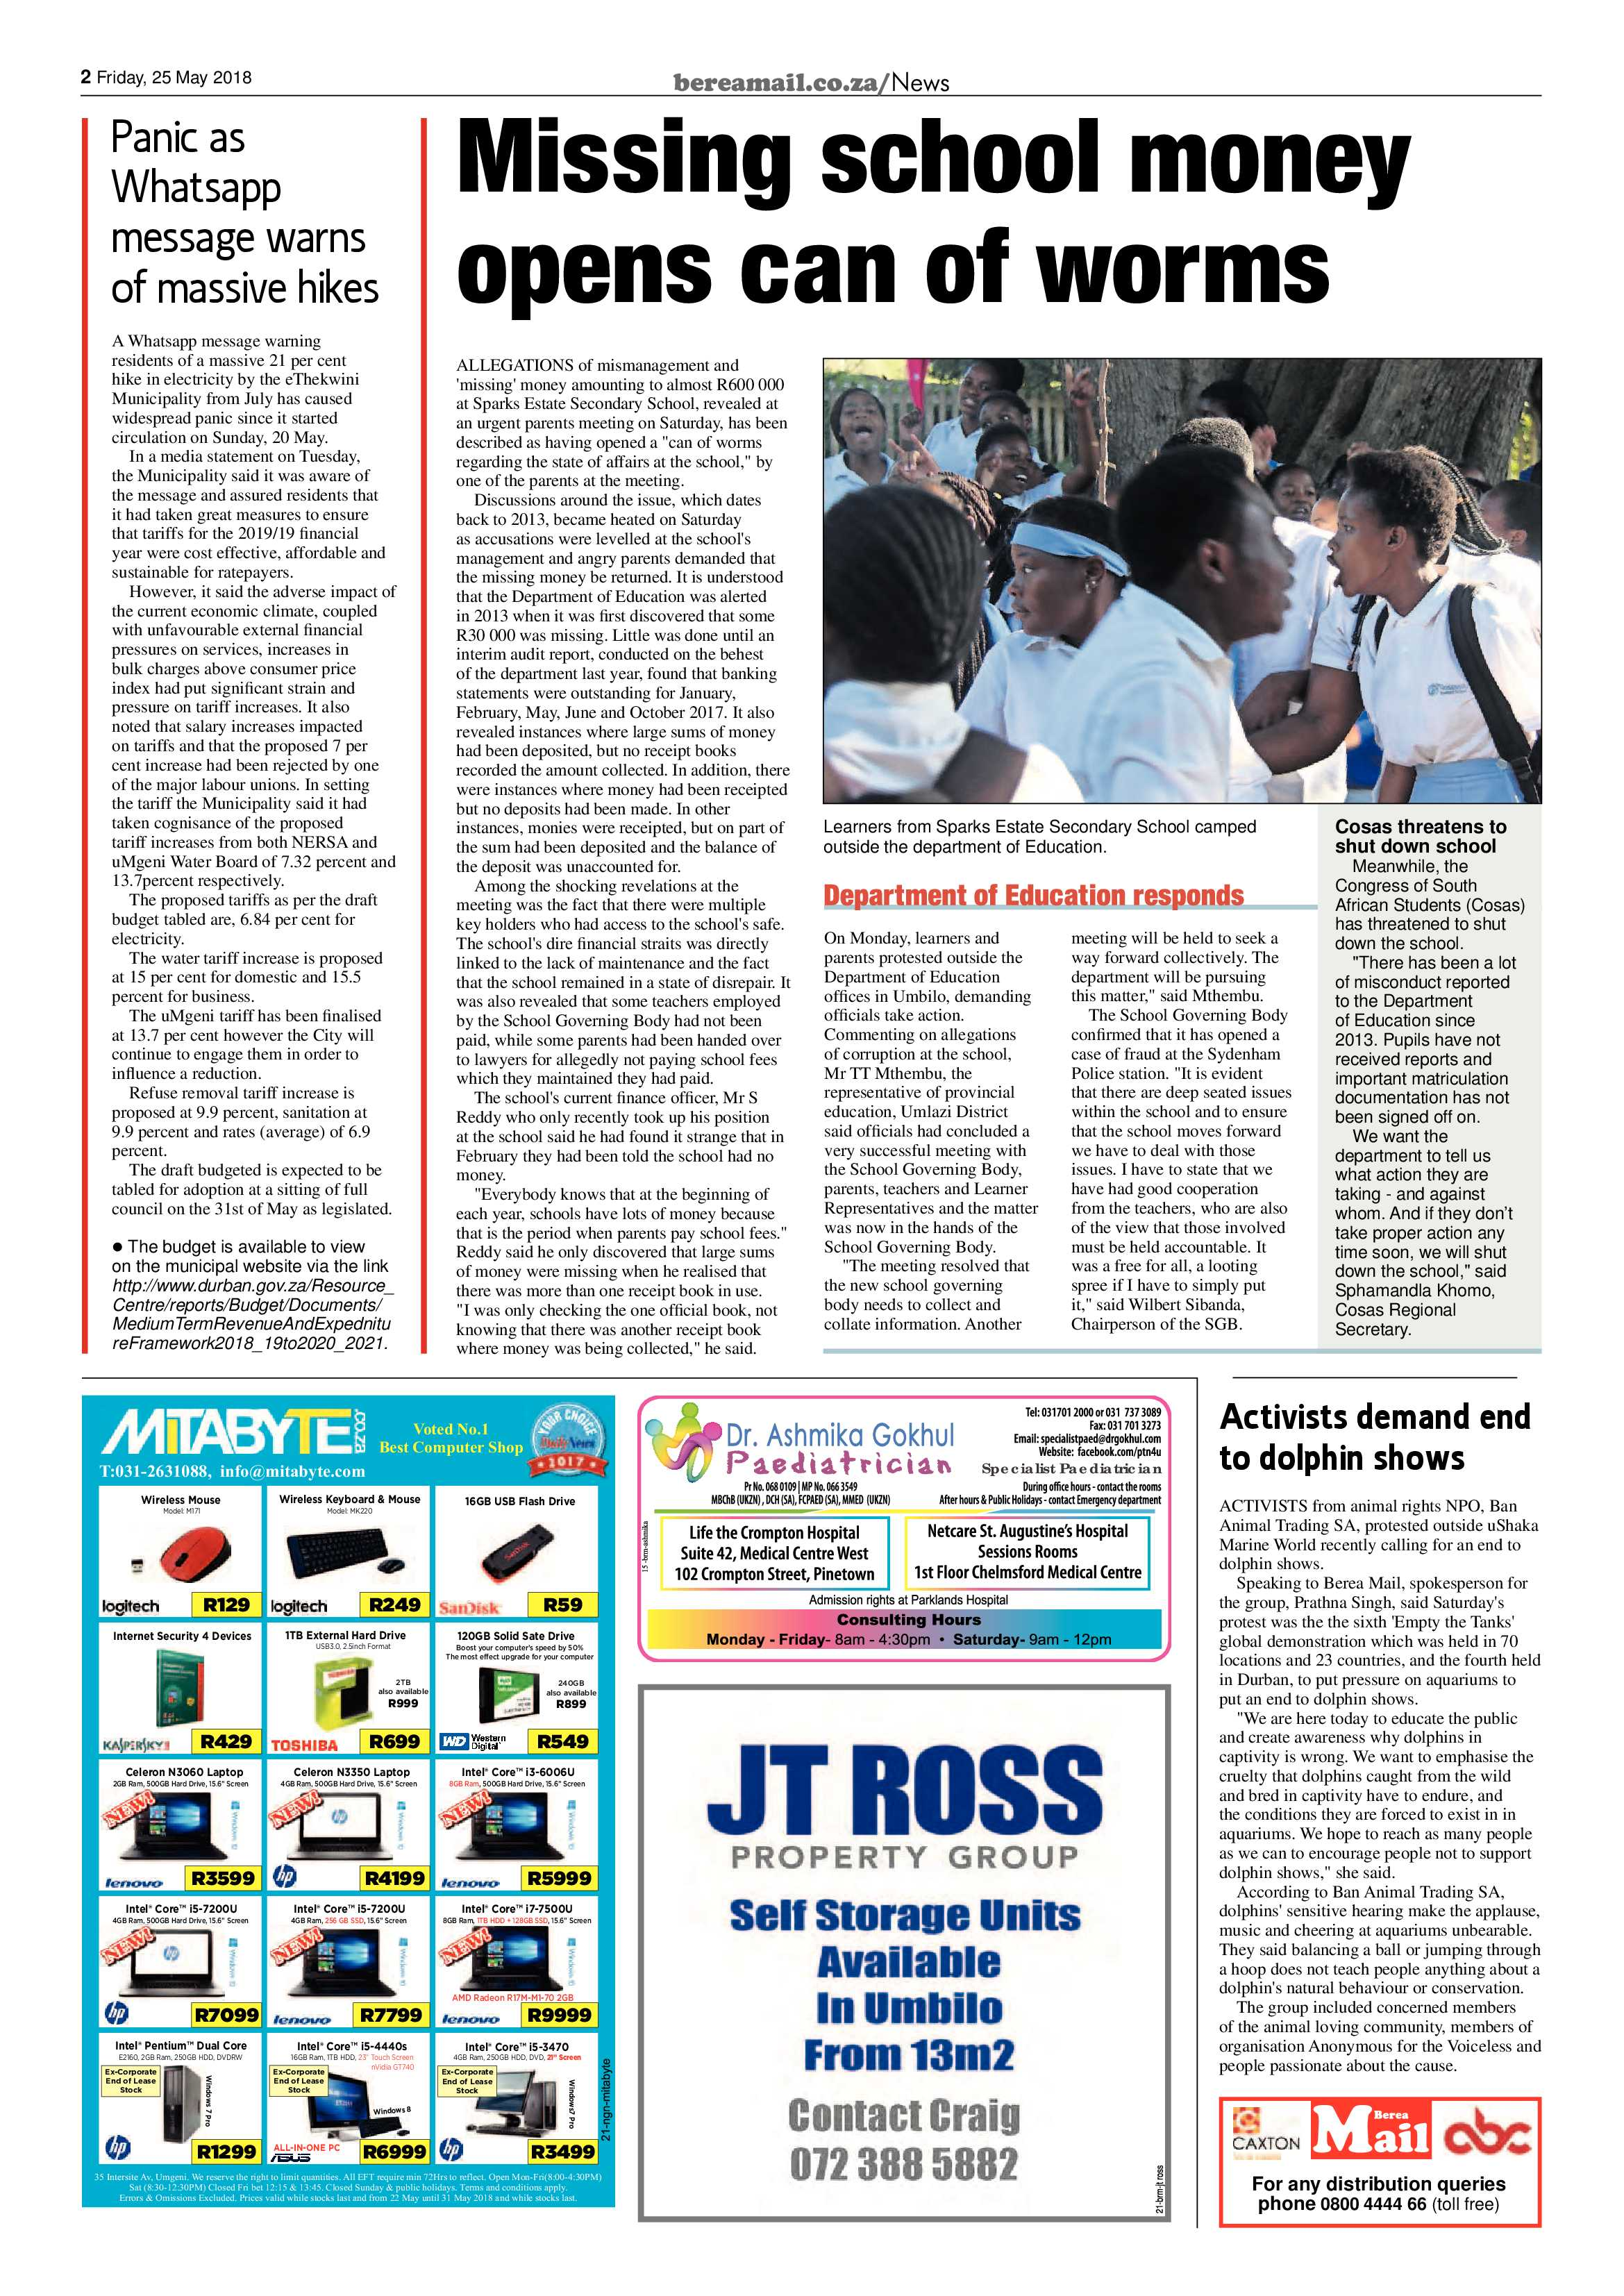 berea-mail-25-may-2018-epapers-page-2